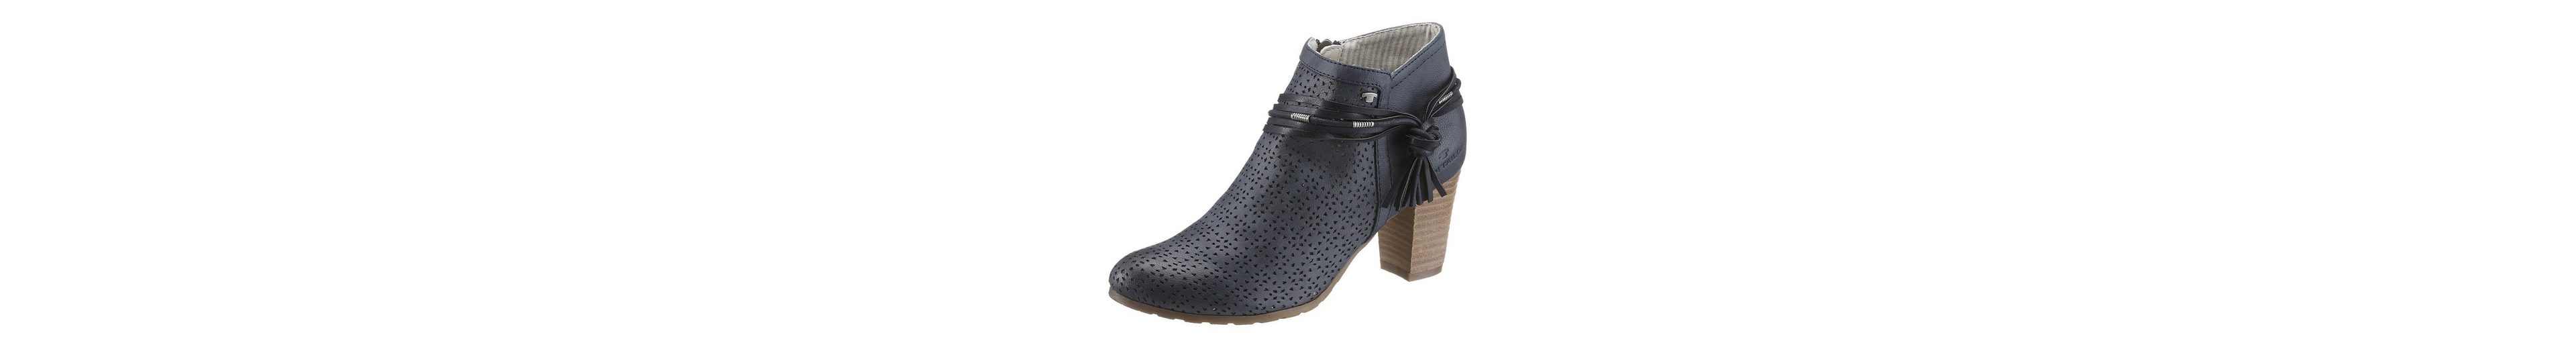 Tom Tailor Stiefelette, mit Perforation